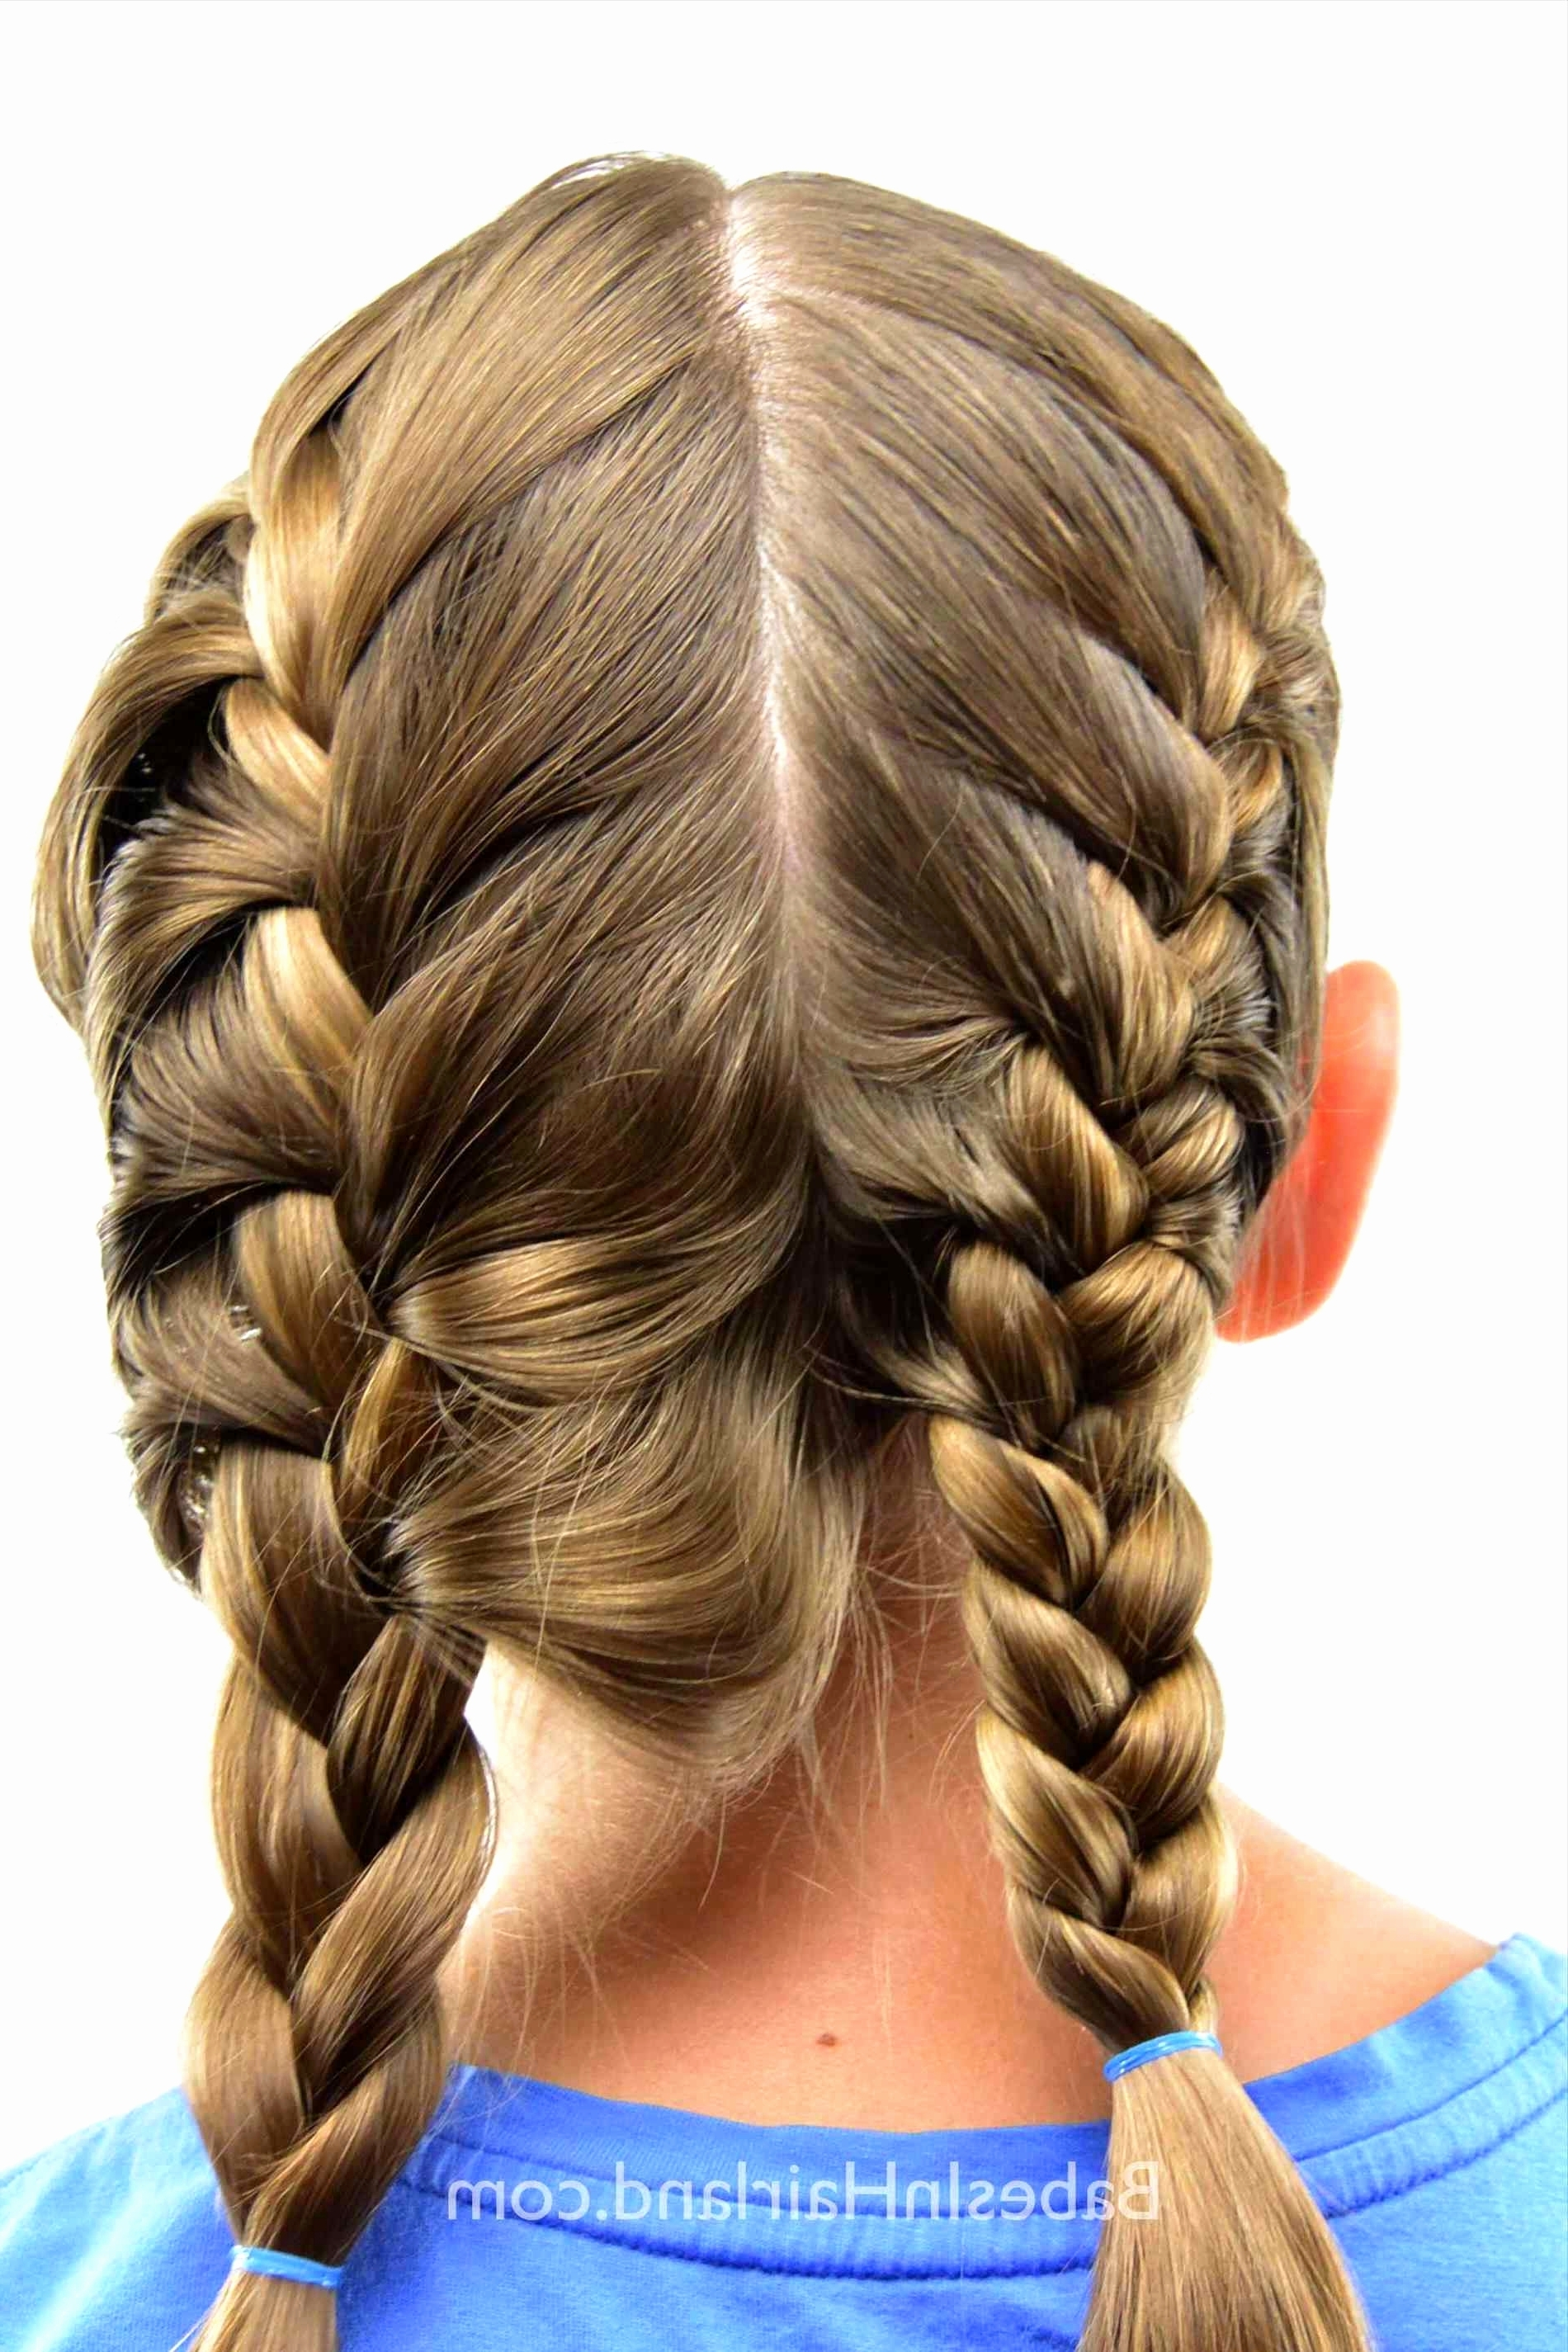 Emejing French Braid Hairstyles Ideas – Styles & Ideas 2018 – Sperr Within Latest French Braid Hairstyles (View 10 of 15)